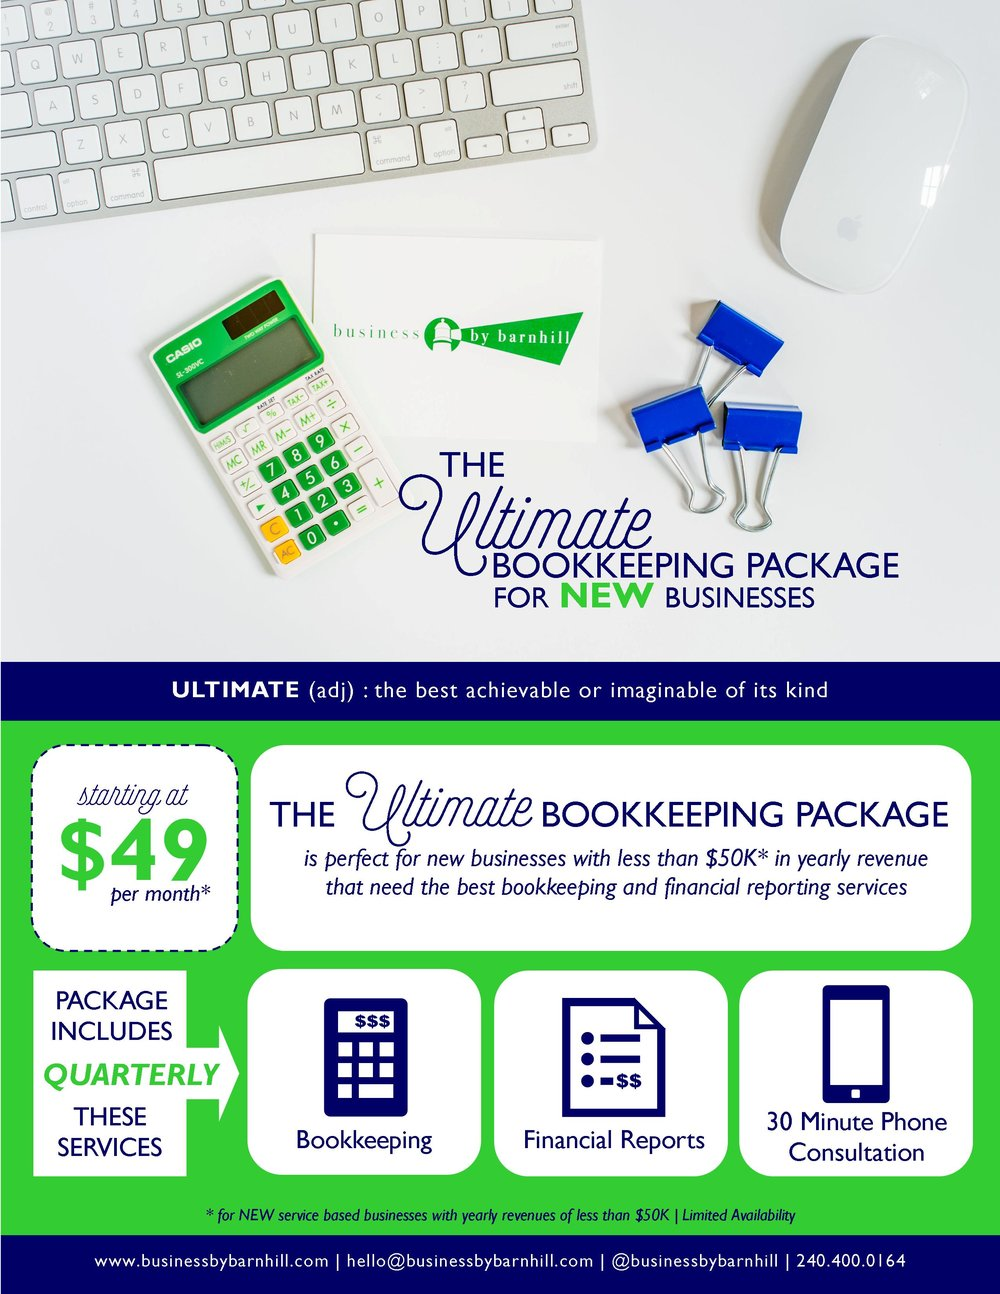 business by barnhill ultimate new small business bookkeeping package.jpg